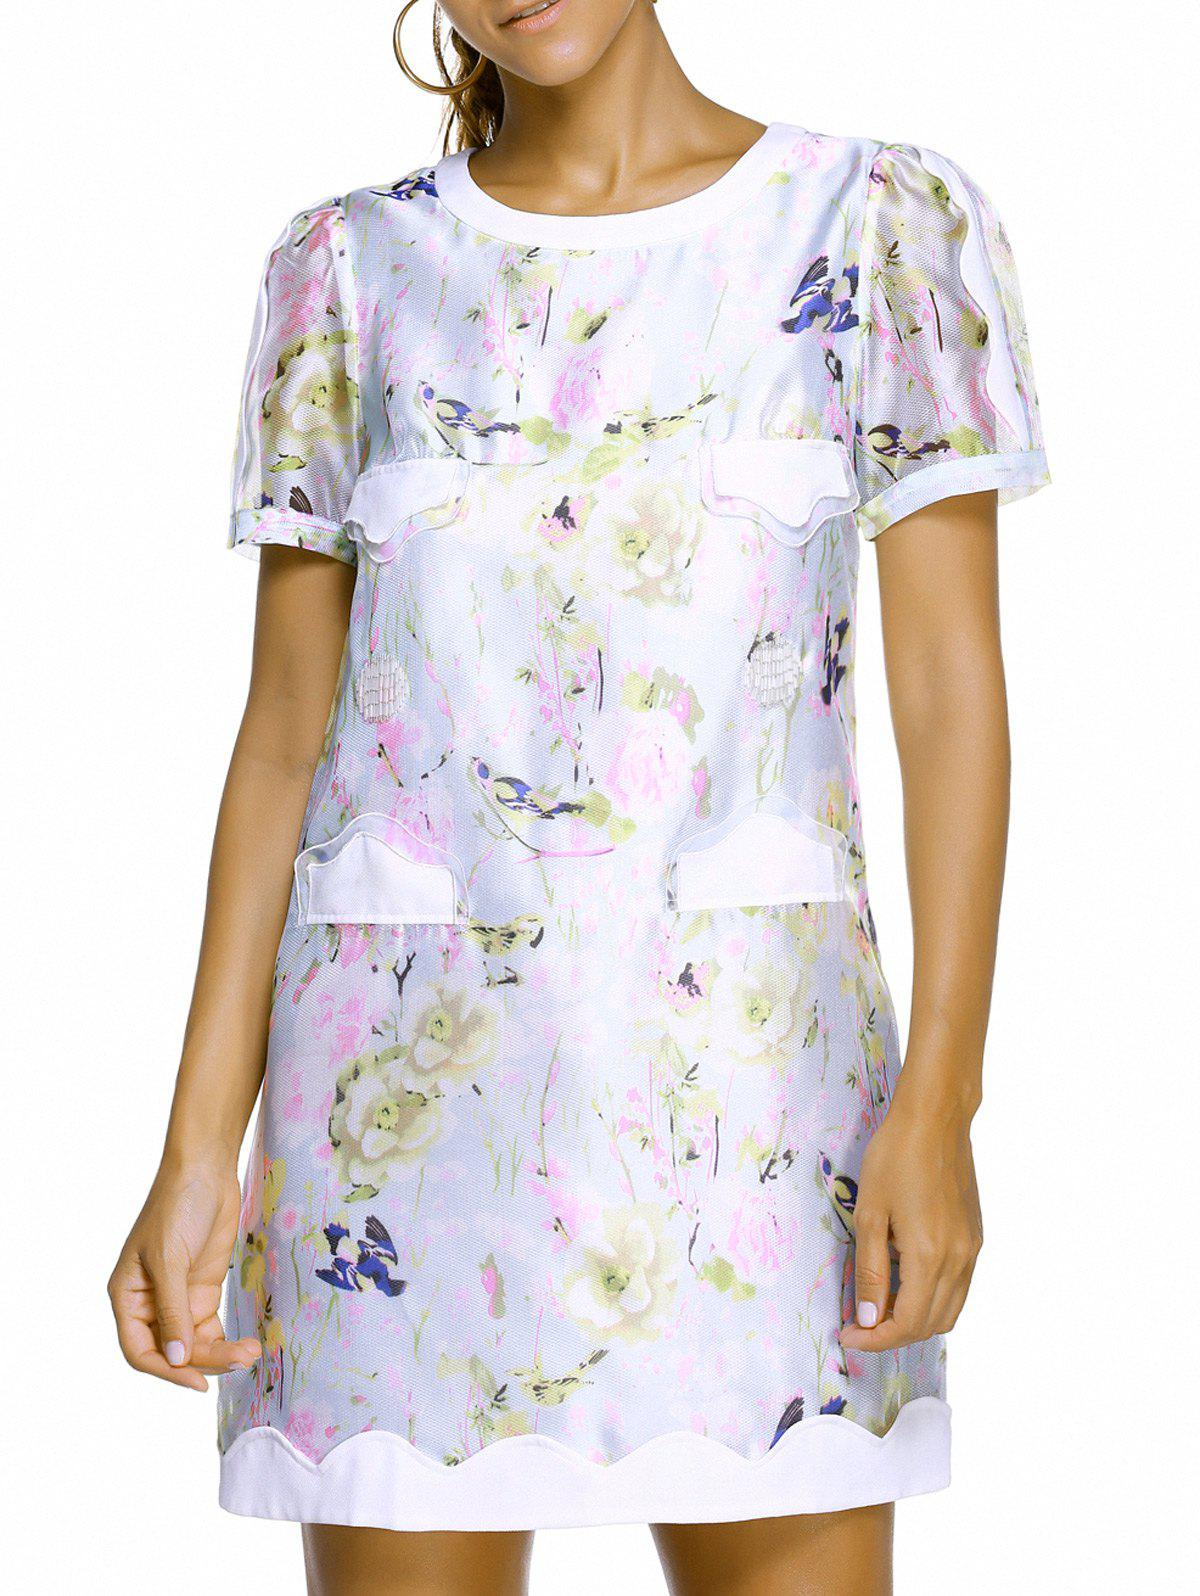 Charming Short Sleeve Round Neck Spliced Floral Print Women's Dress - XL WHITE